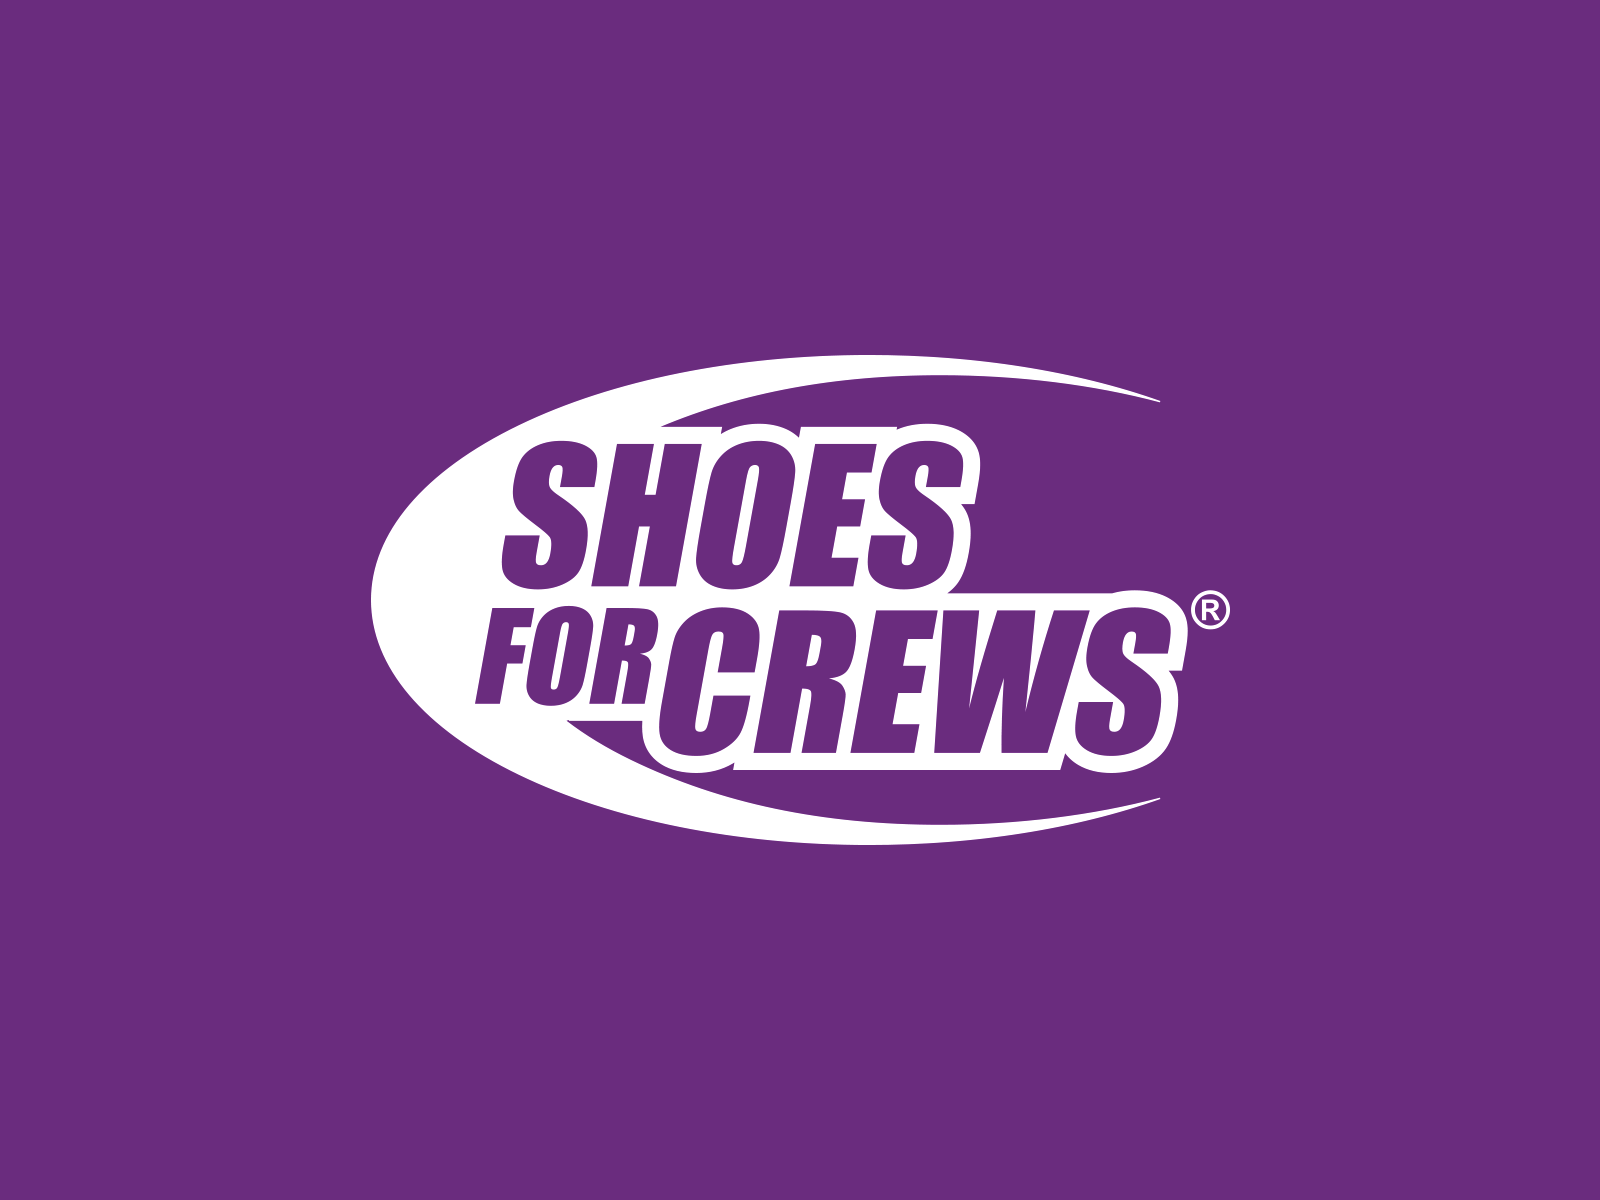 Shoes For Crews identity design - Portfolio of Steve Shreve